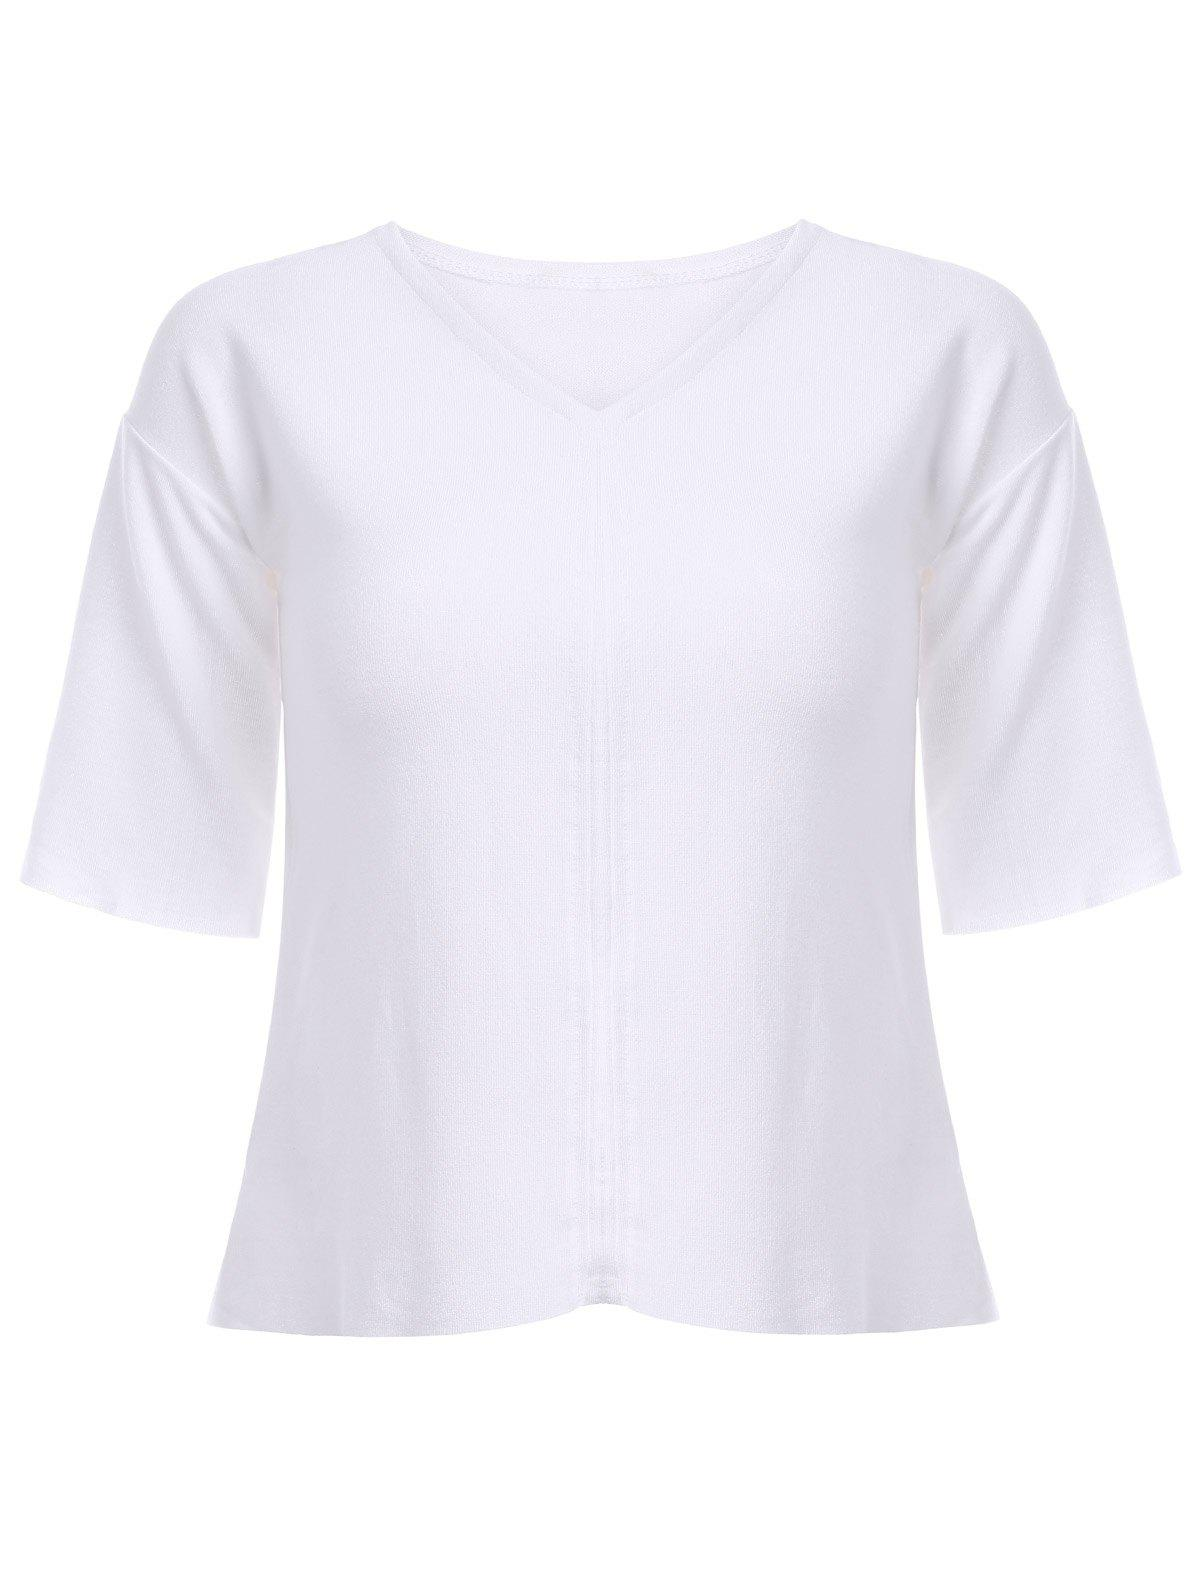 Casual Women's Tie V-Neck 3/4 Sleeve T-Shirt - WHITE ONE SIZE(FIT SIZE XS TO M)